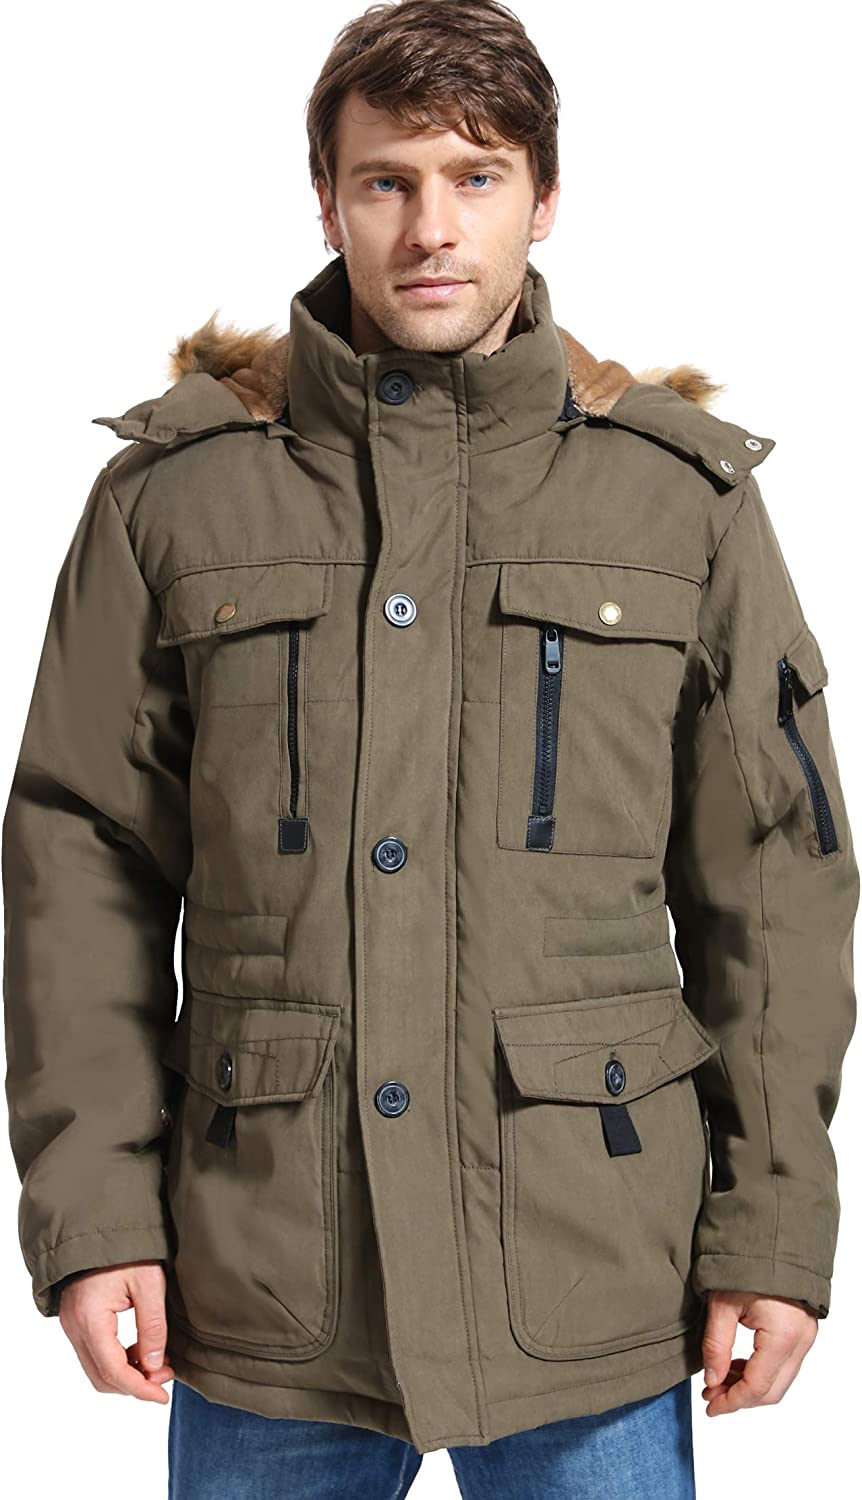 Mens Winter Parka Insulated Warm Quality Japan's largest assortment inspection Jacket Faux Fur Military Coat w